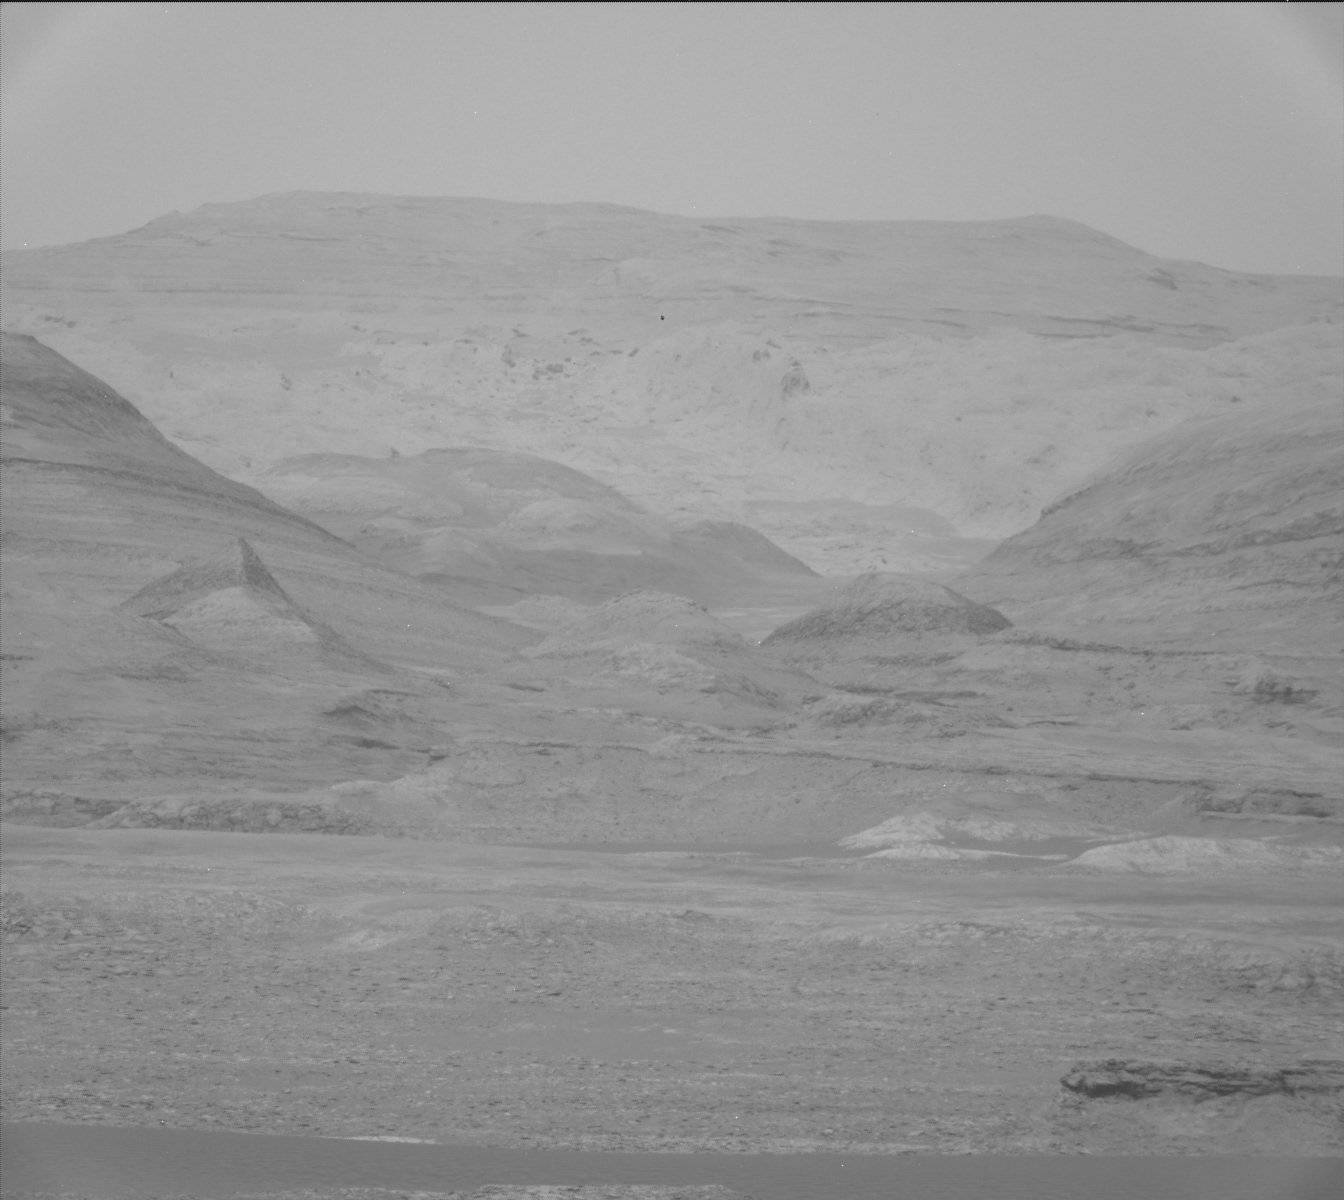 Nasa's Mars rover Curiosity acquired this image using its Mast Camera (Mastcam) on Sol 1104